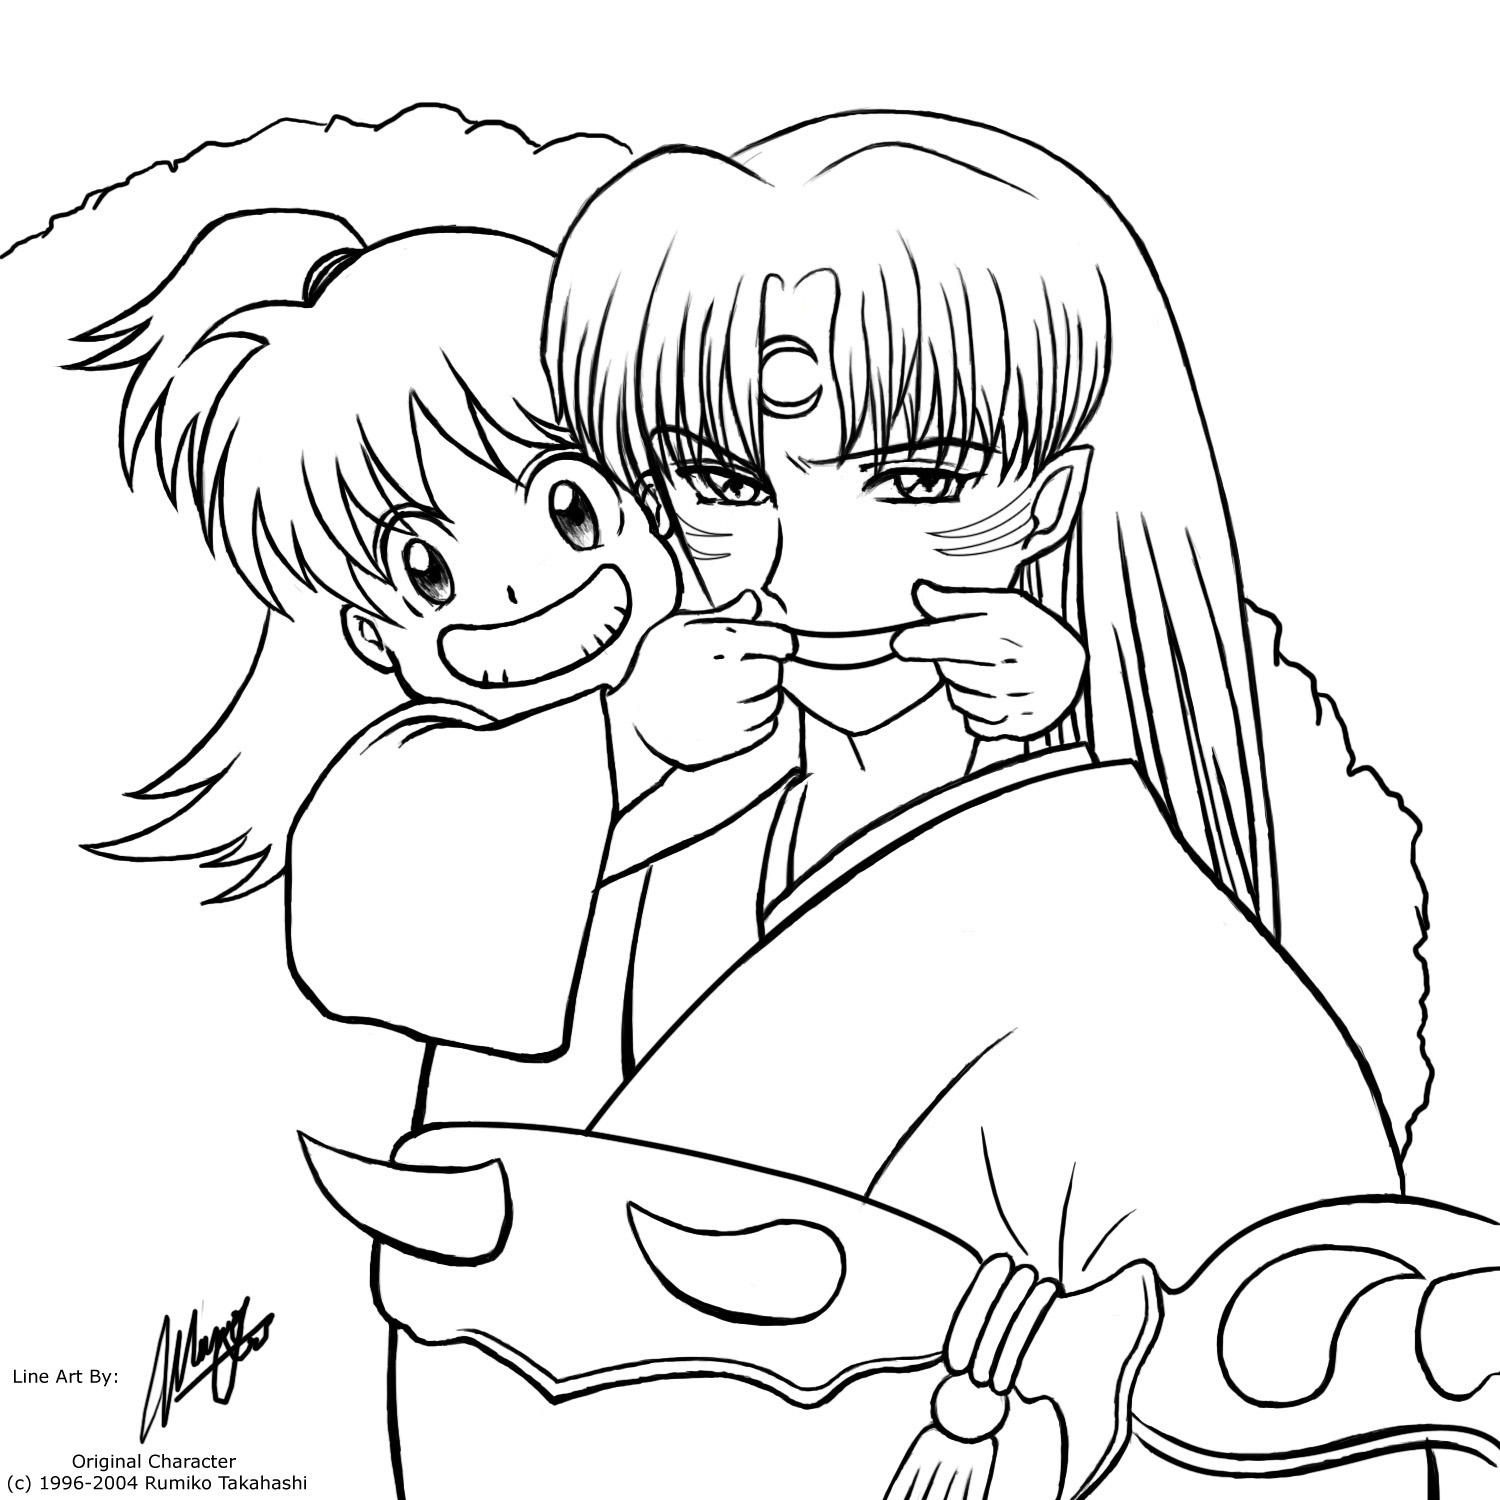 sesshoumaru coloring pages - photo#9